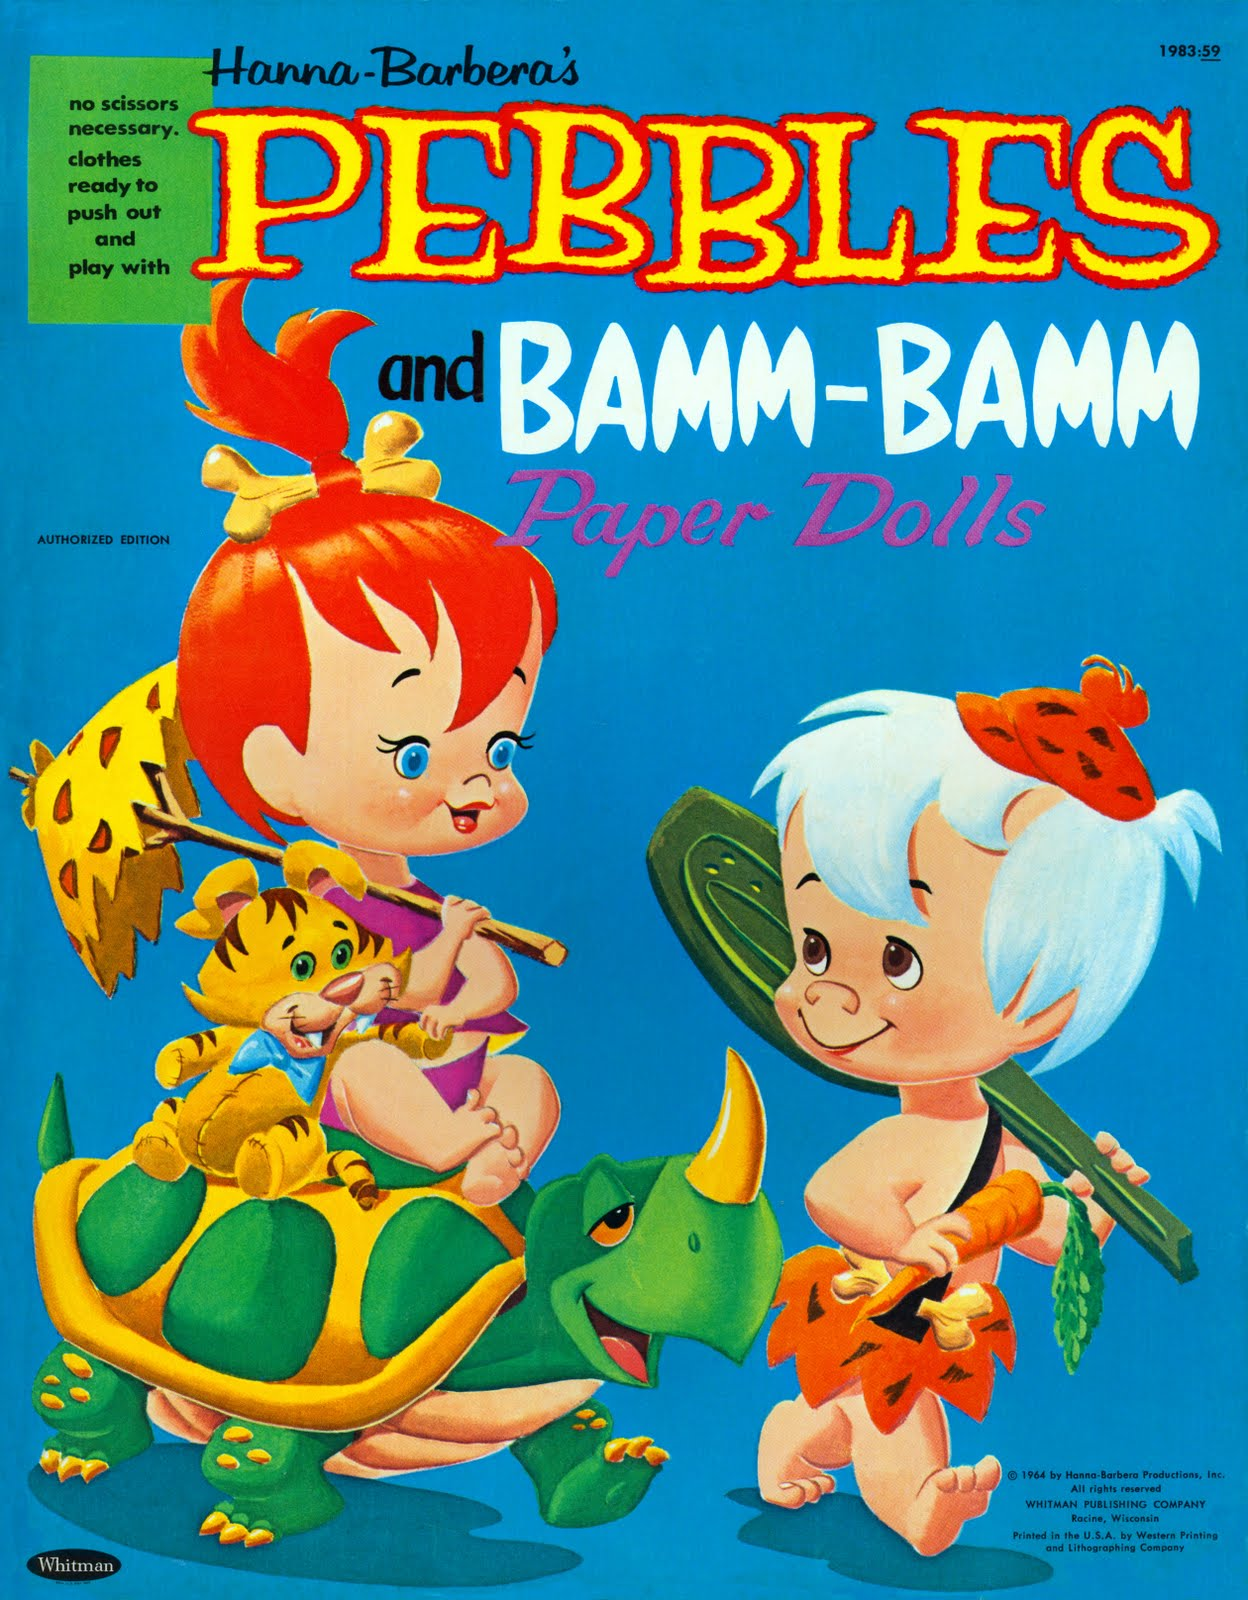 Cover to 'Pebbles and Bamm-Bamm Paper Dolls' book with illustration of the 'Flintstones' toddlers